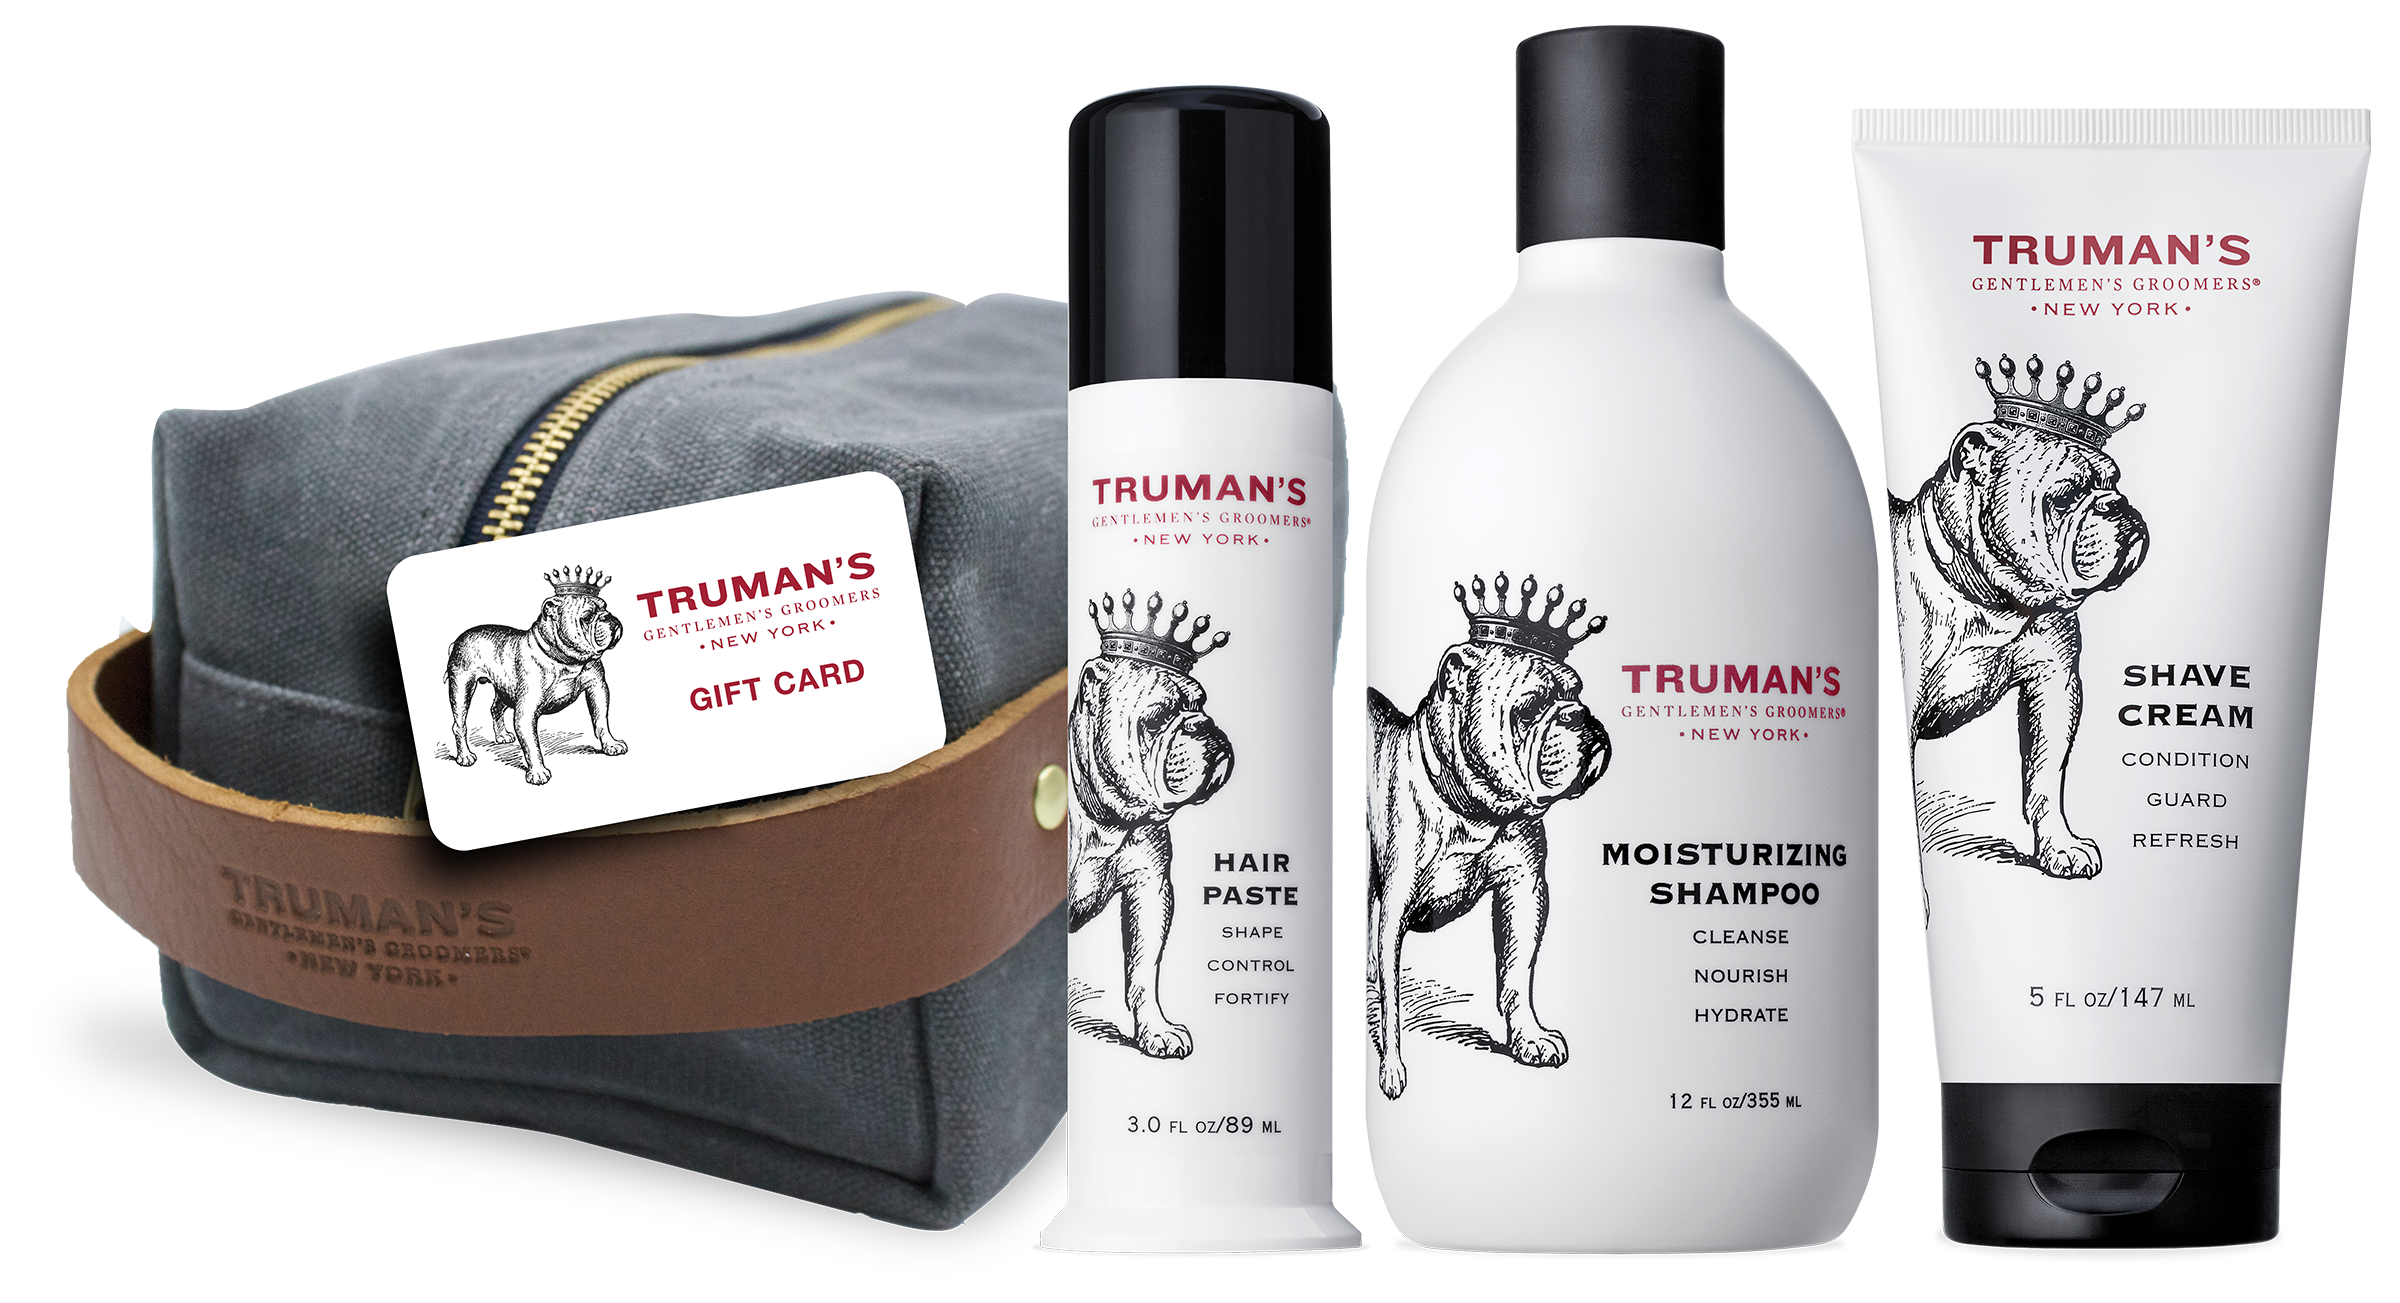 truman's gift set with dopp kit